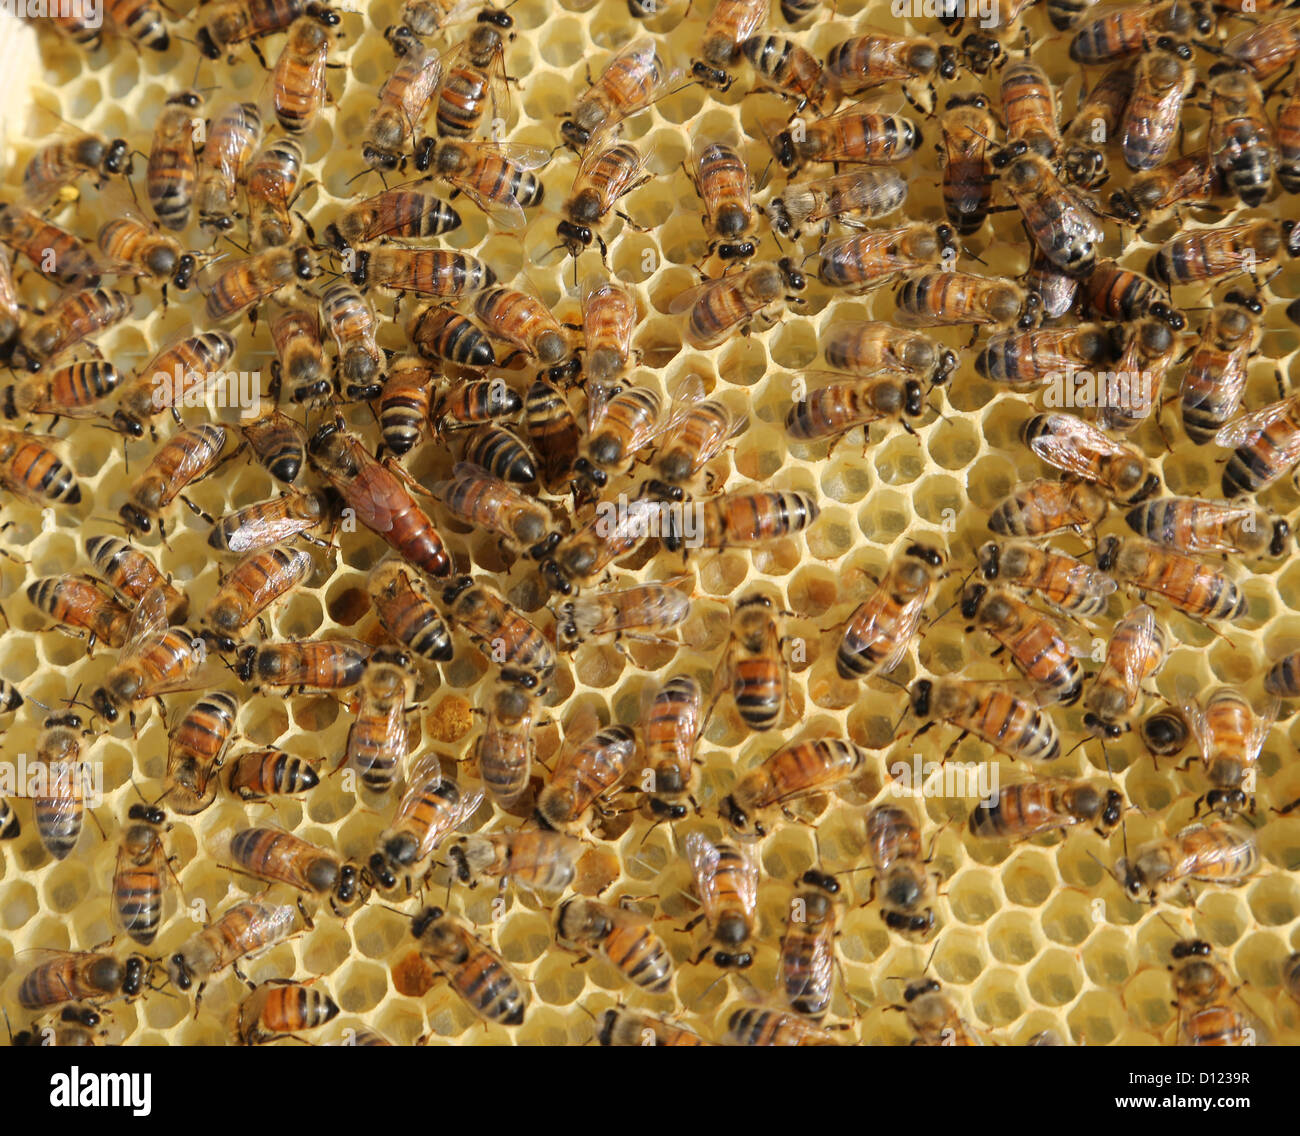 Queen Bee With Honey Bees on a Frame From A Beehive Surrey England - Stock Image